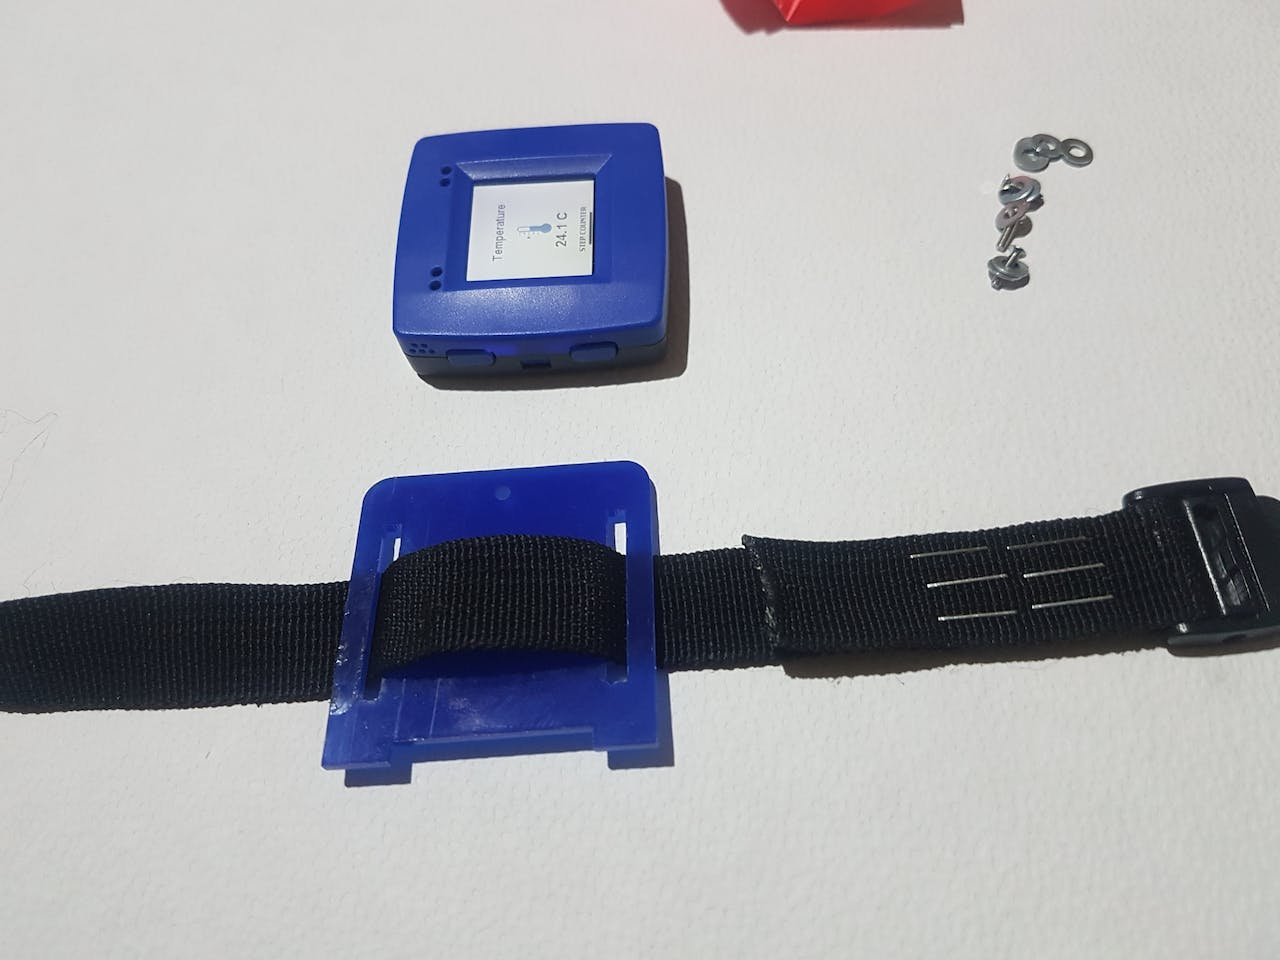 Health and Fitness Tracker - Hackster io